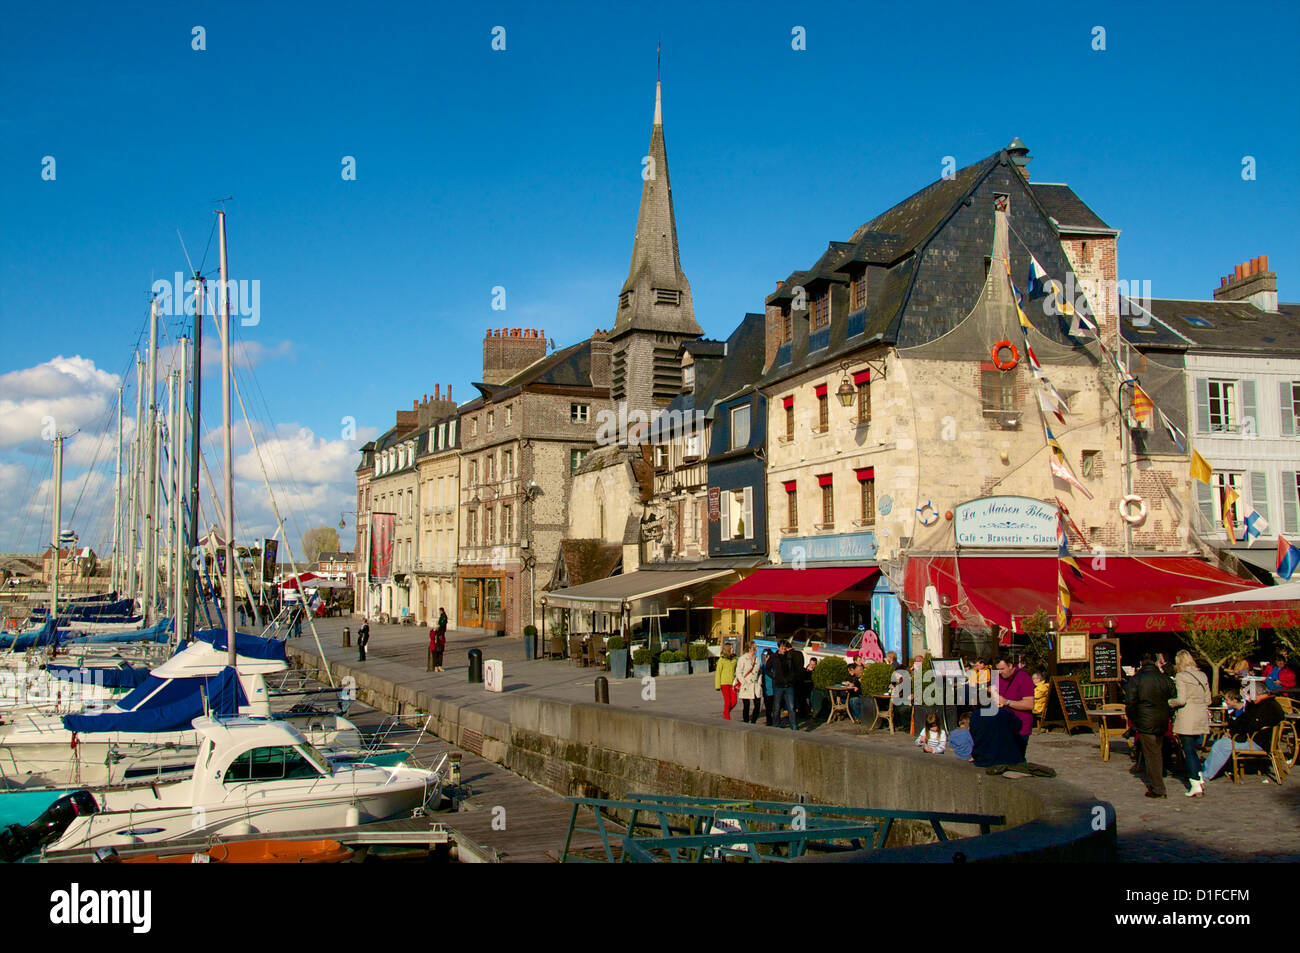 Naval Museum in the ancient Saint Etienne church, on the quay along the Vieux Bassin, Honfleur, Calvados, Normandy, - Stock Image